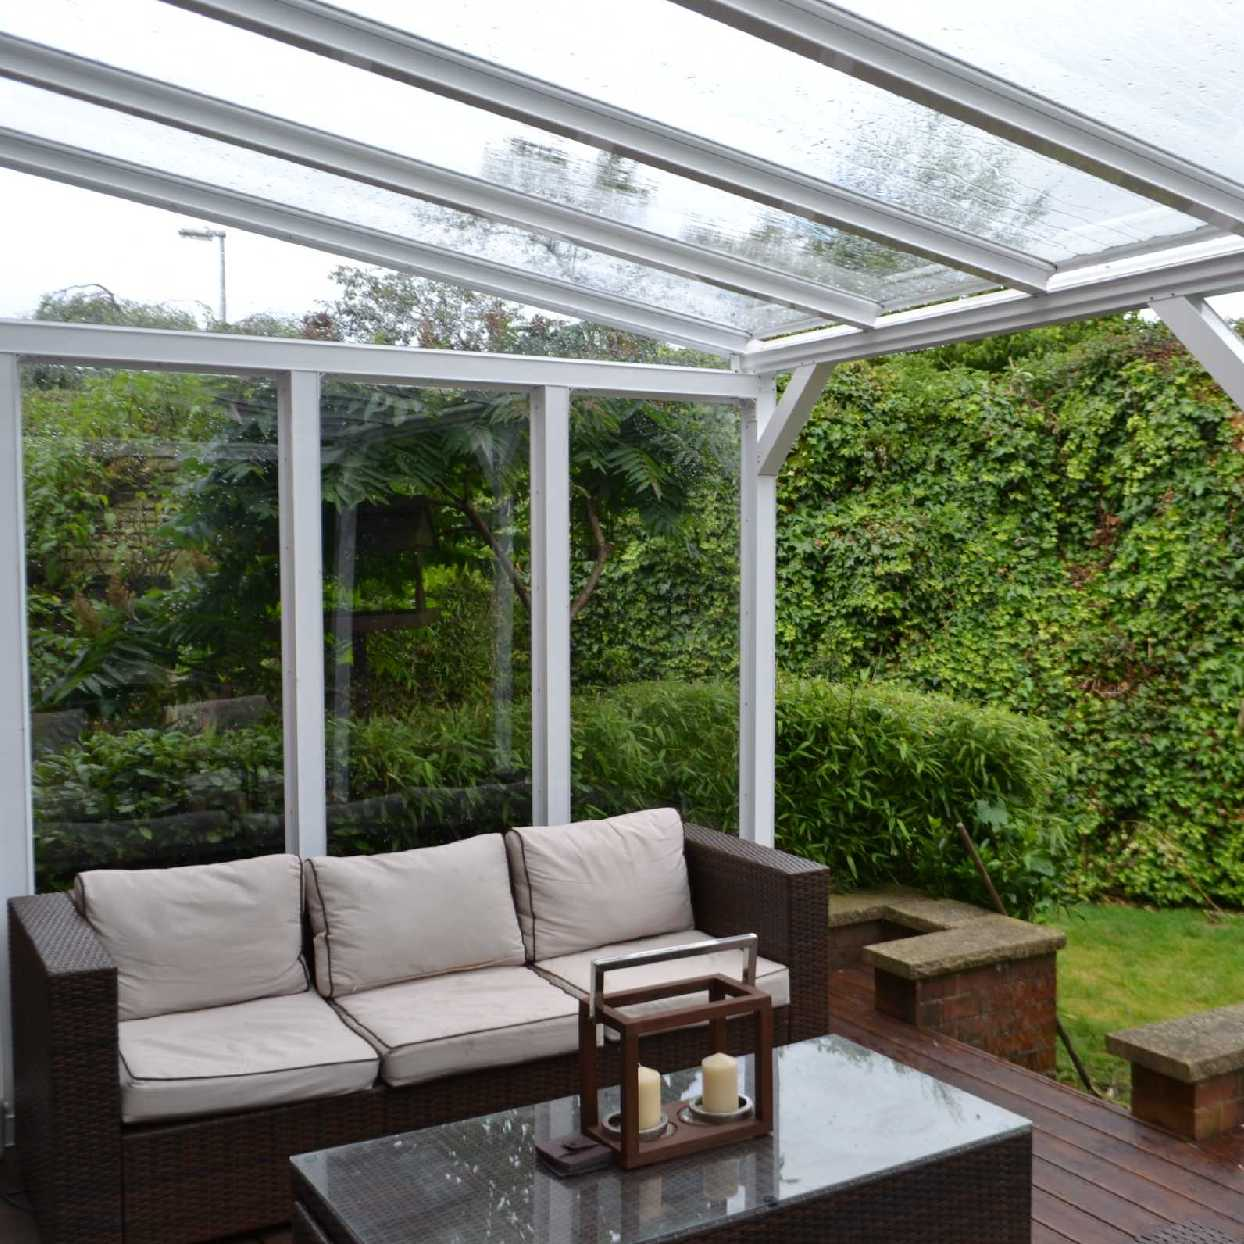 Great selection of Omega Smart Lean-To Canopy with 16mm Polycarbonate Glazing - 9.2m (W) x 3.5m (P), (5) Supporting Posts